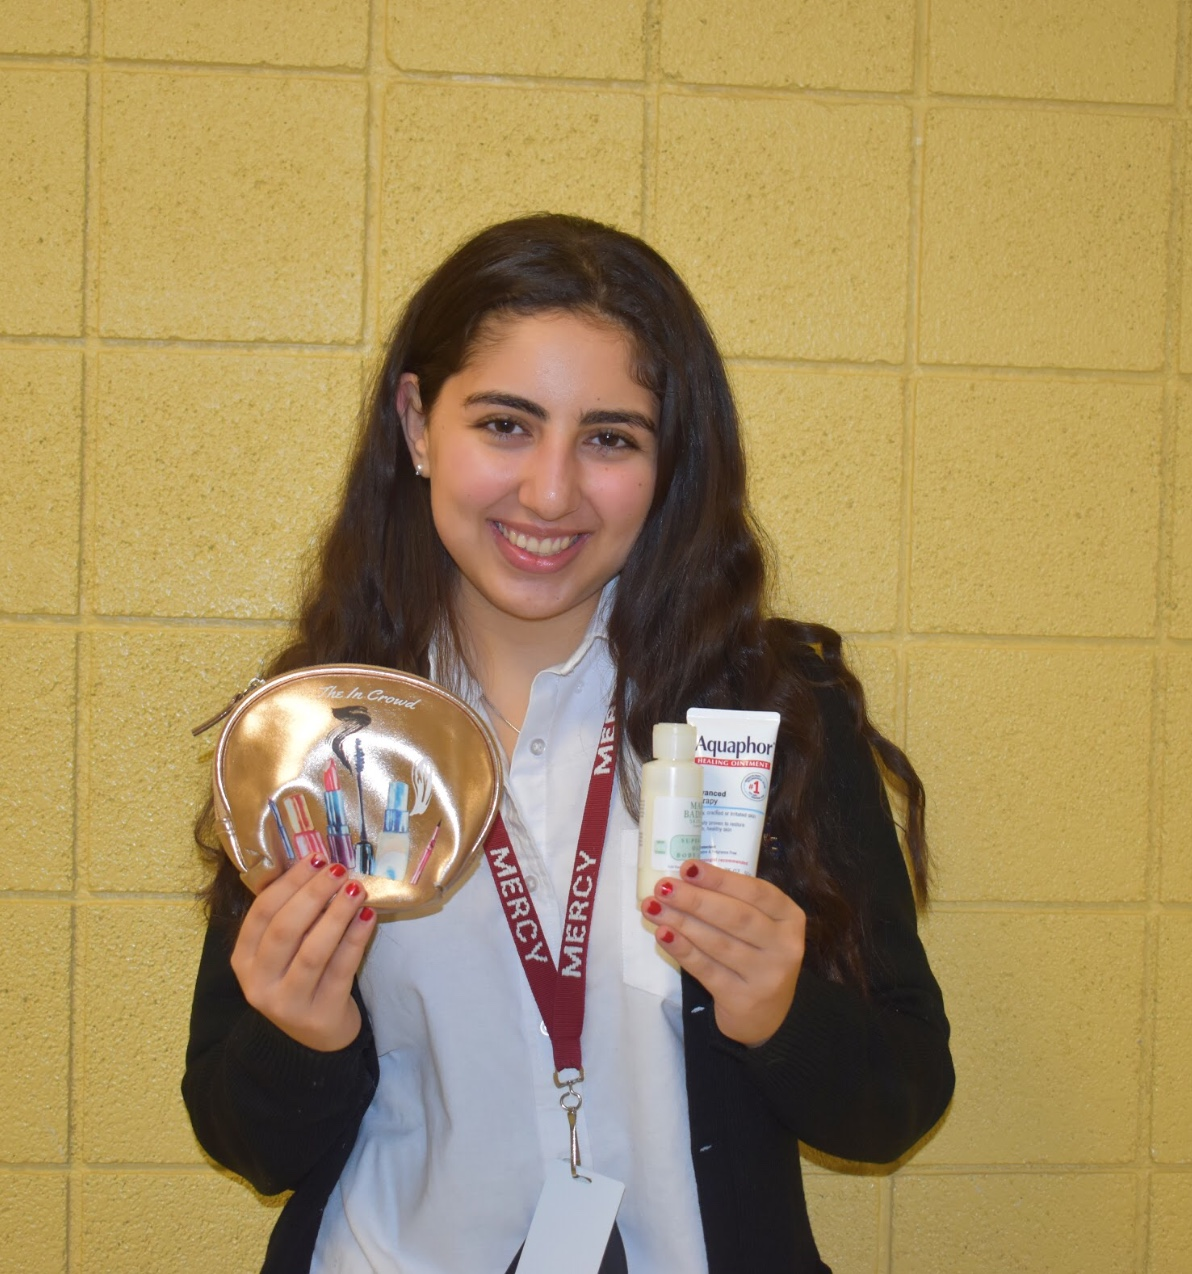 Senior Nicole Hesano carries a emergency kit in her backpack with products to help her skin cope with the cold weather. Photo by: Sabrina Yono